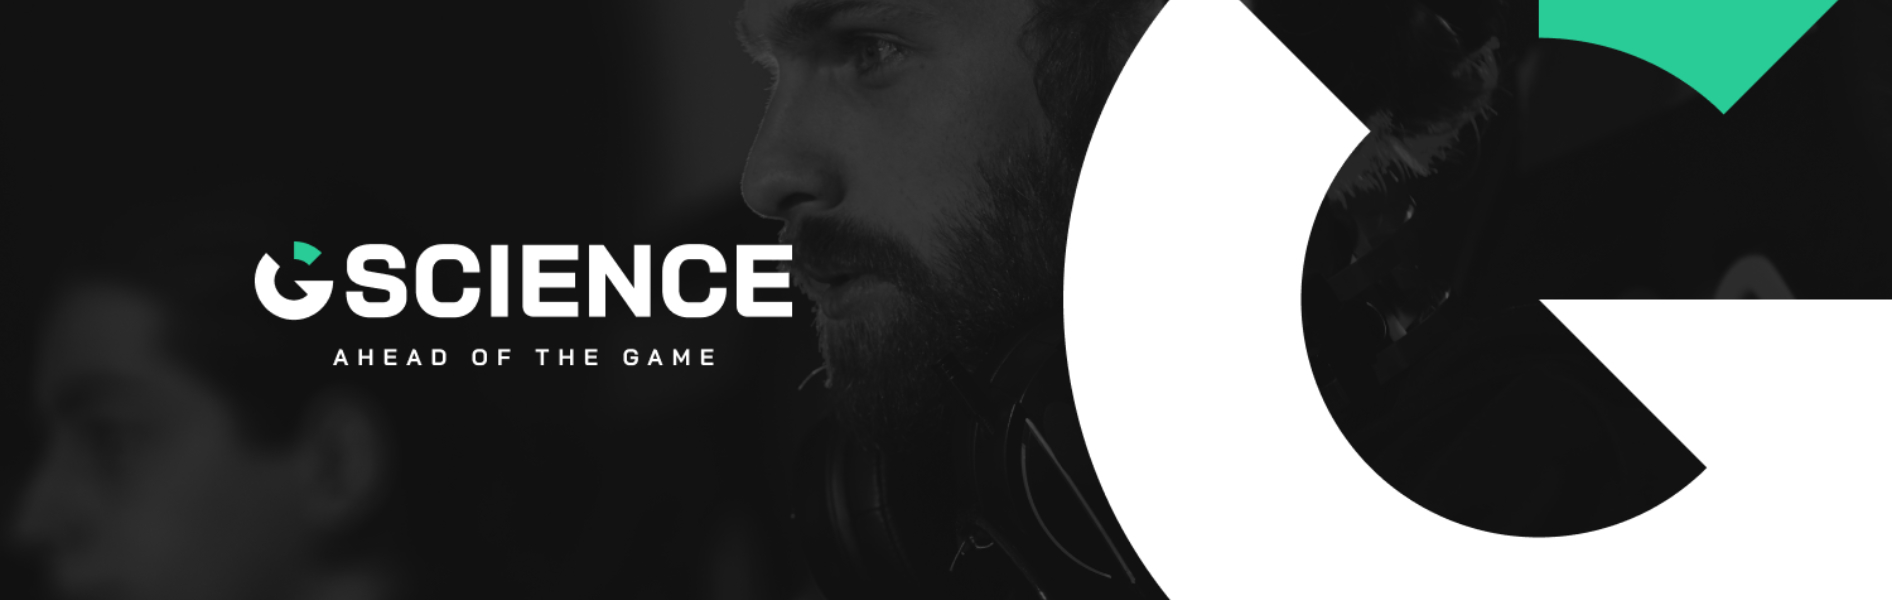 Gscience Banner